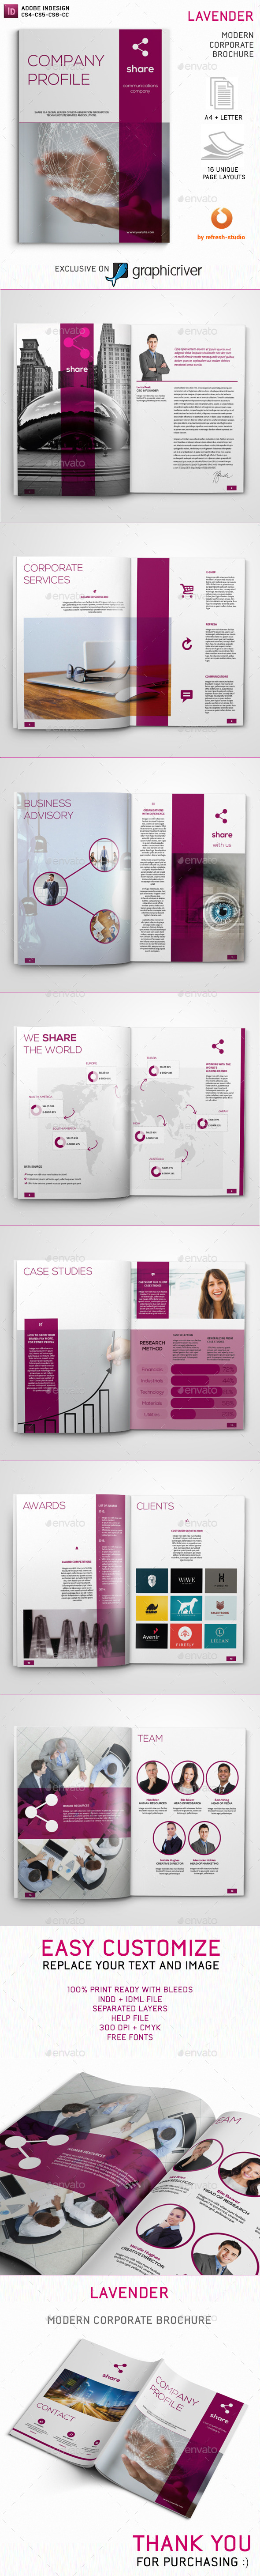 GraphicRiver Lavender Brochure 10979100